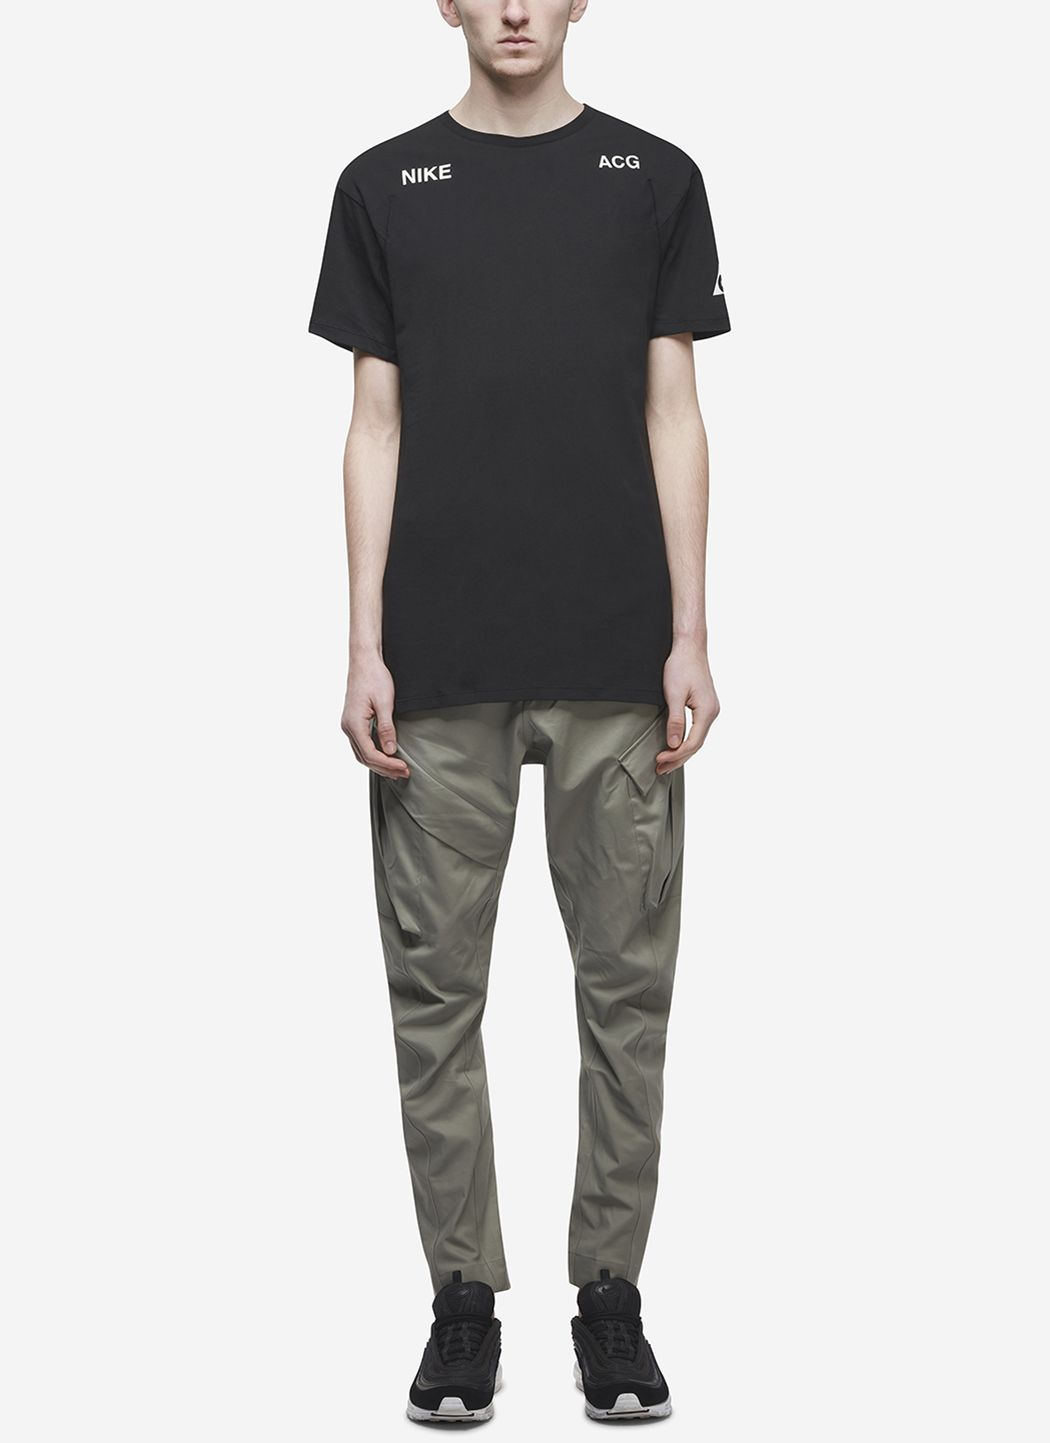 Nikelab ACG T-Shirt in Black / Barely Green 06